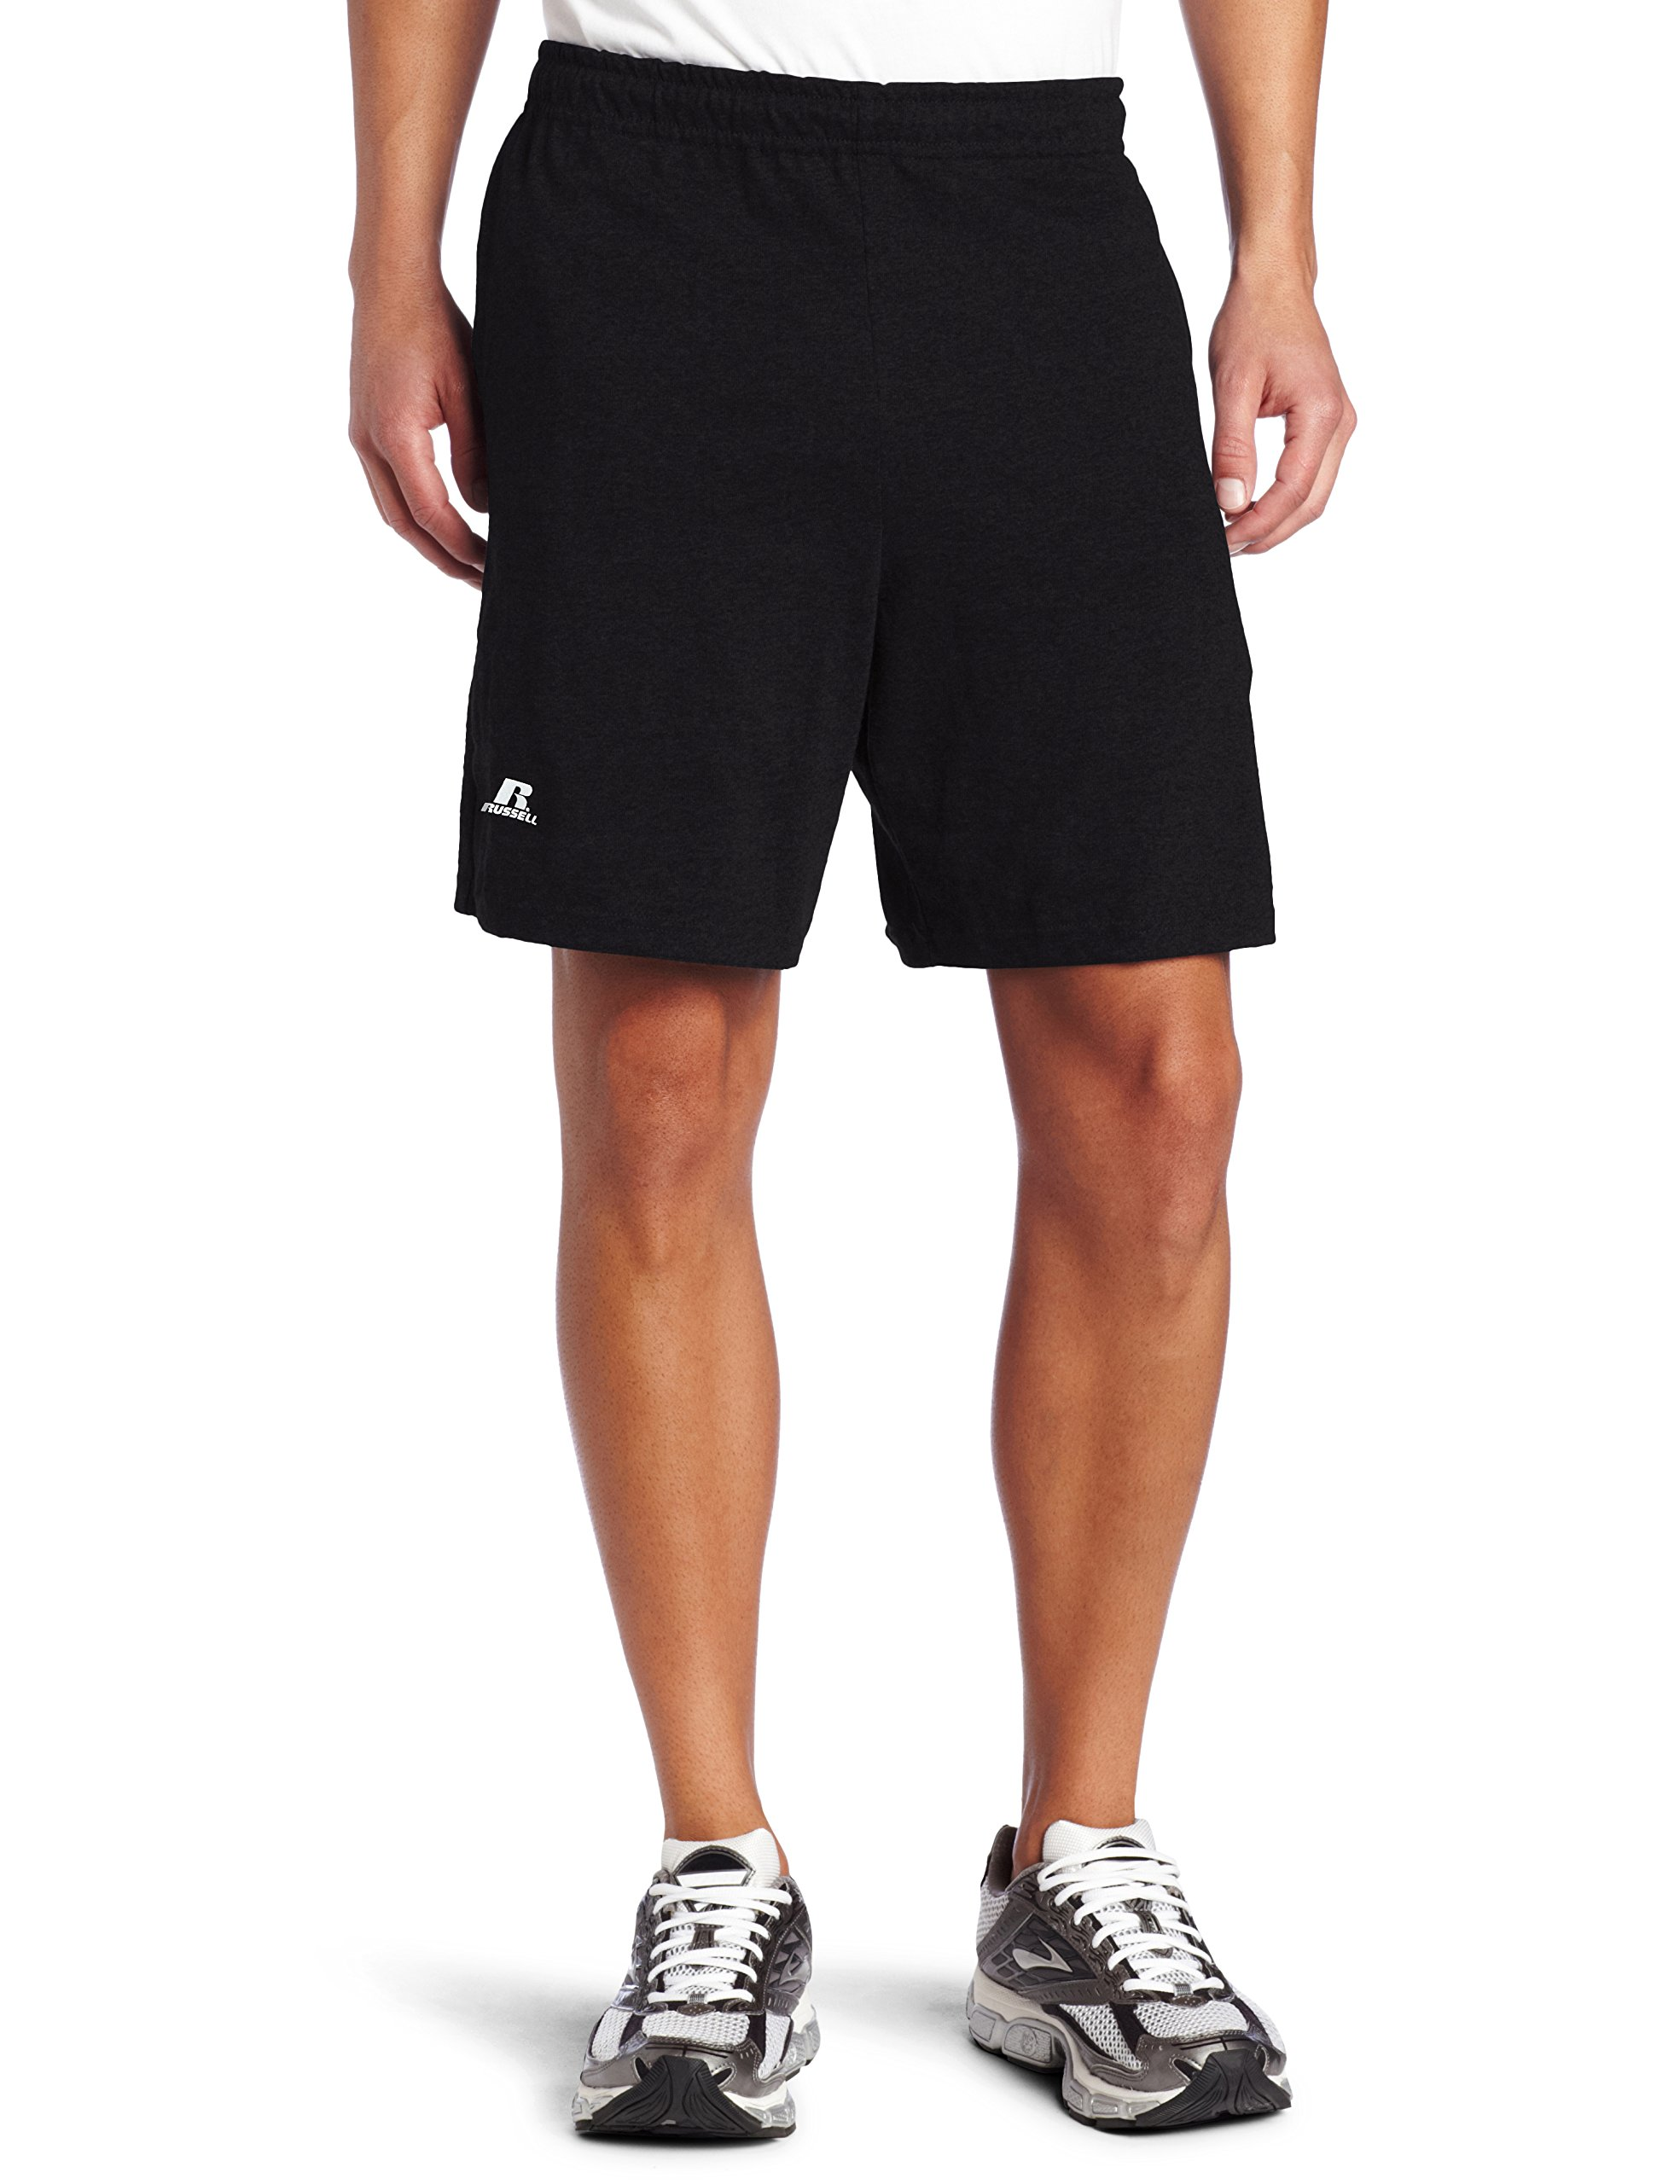 Russell Athletic Men's Cotton Baseline Short with Pockets, Black, XXXX-Large by Russell Athletic